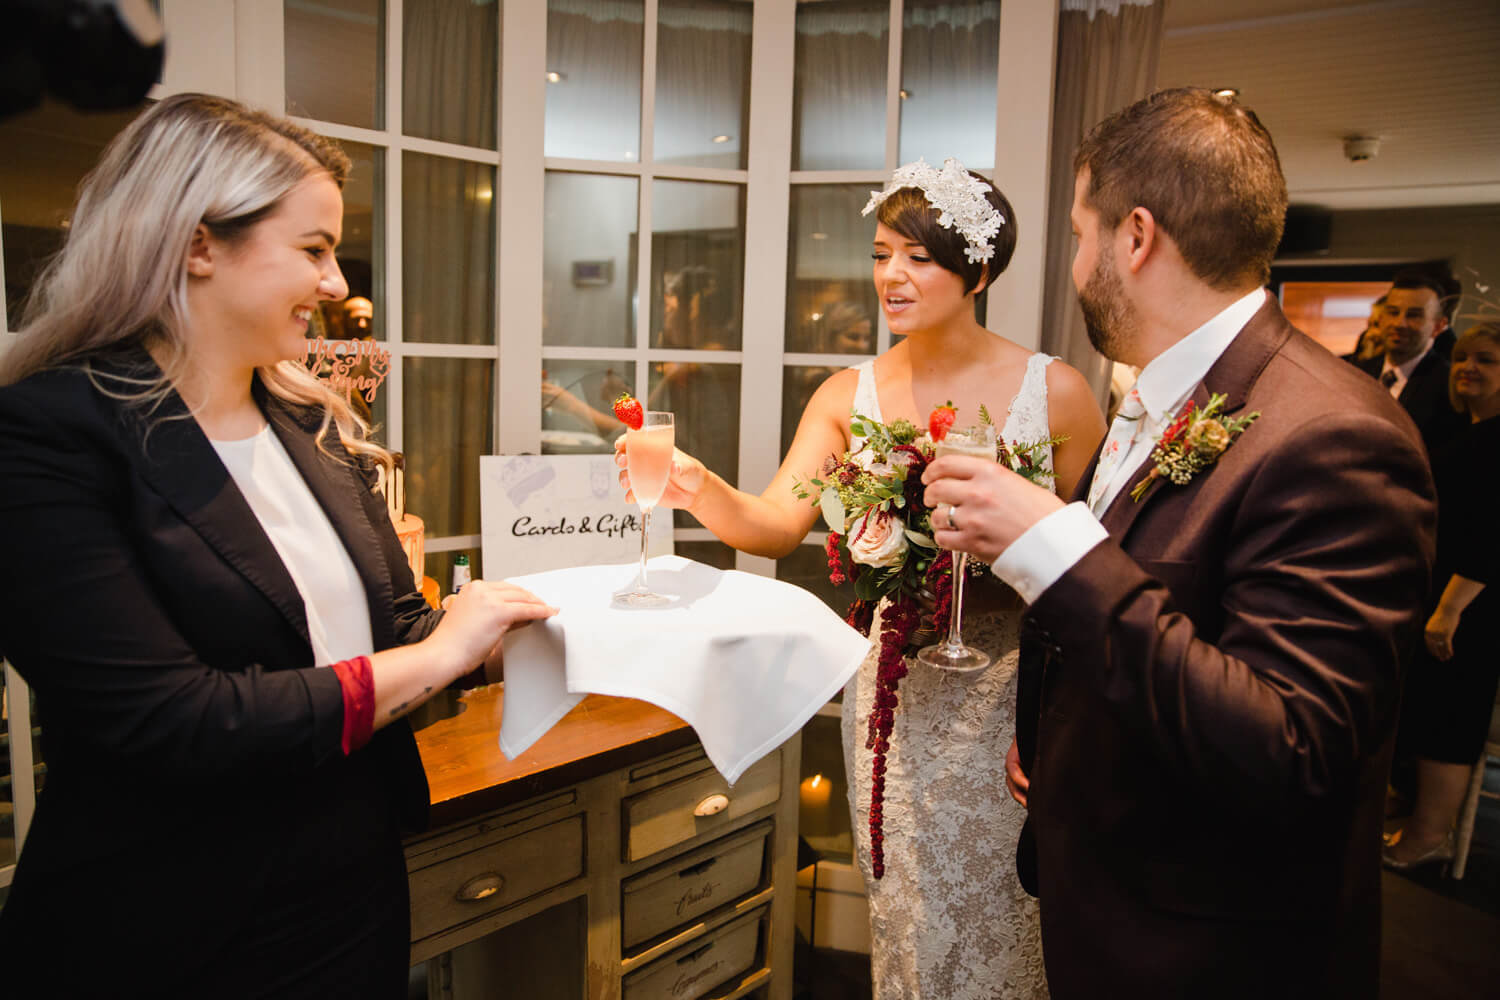 newlyweds share glass of champagne as celebration to wedding